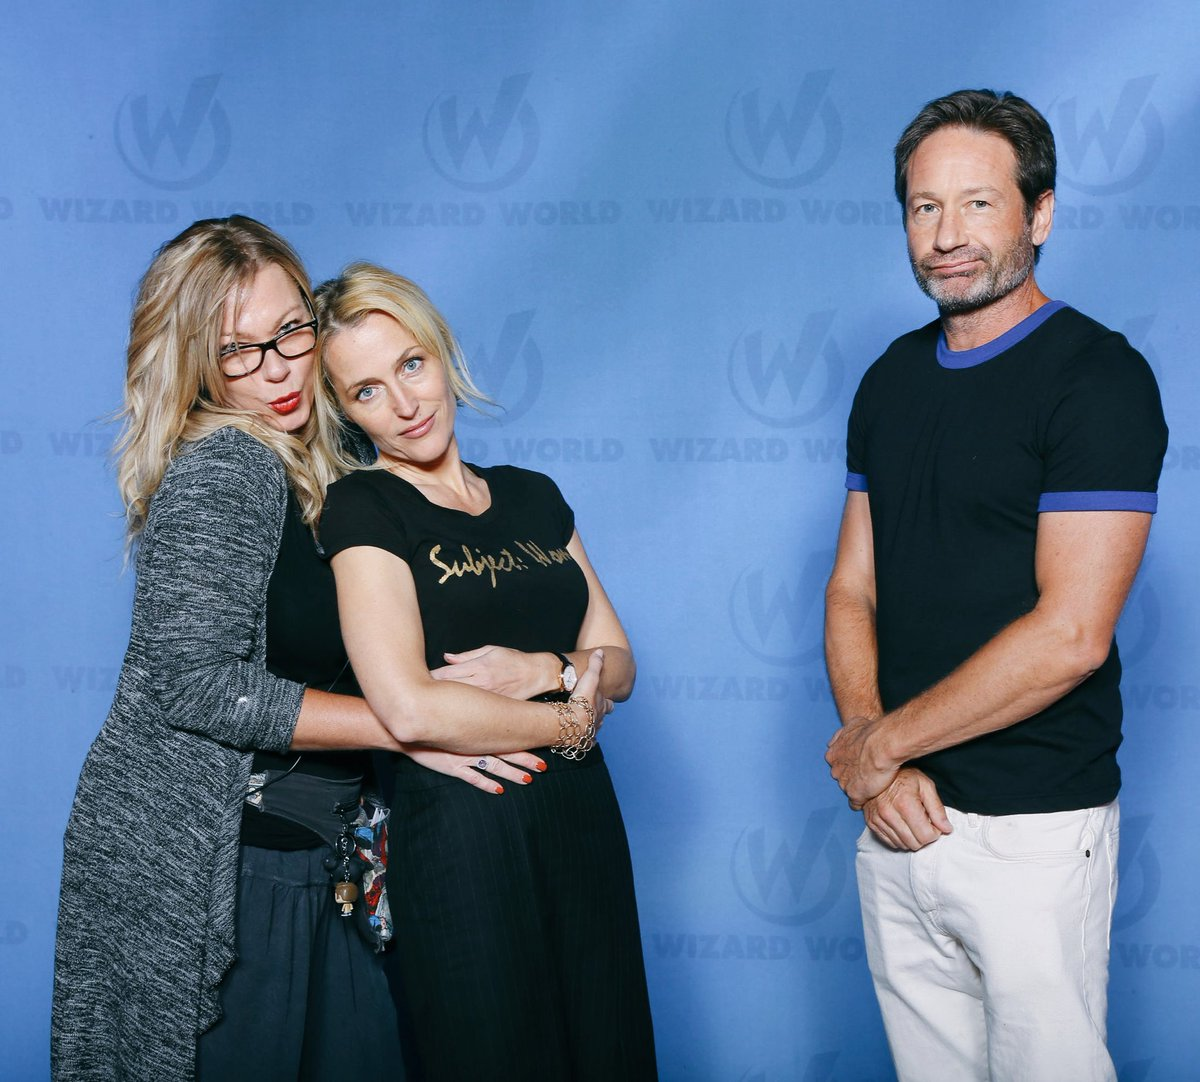 From the #awkwardprom series #GillianAnderson and @davidduchovny and I at the 'Come Sail Away' Junior/Senior prom. https://t.co/bijCwyUczT